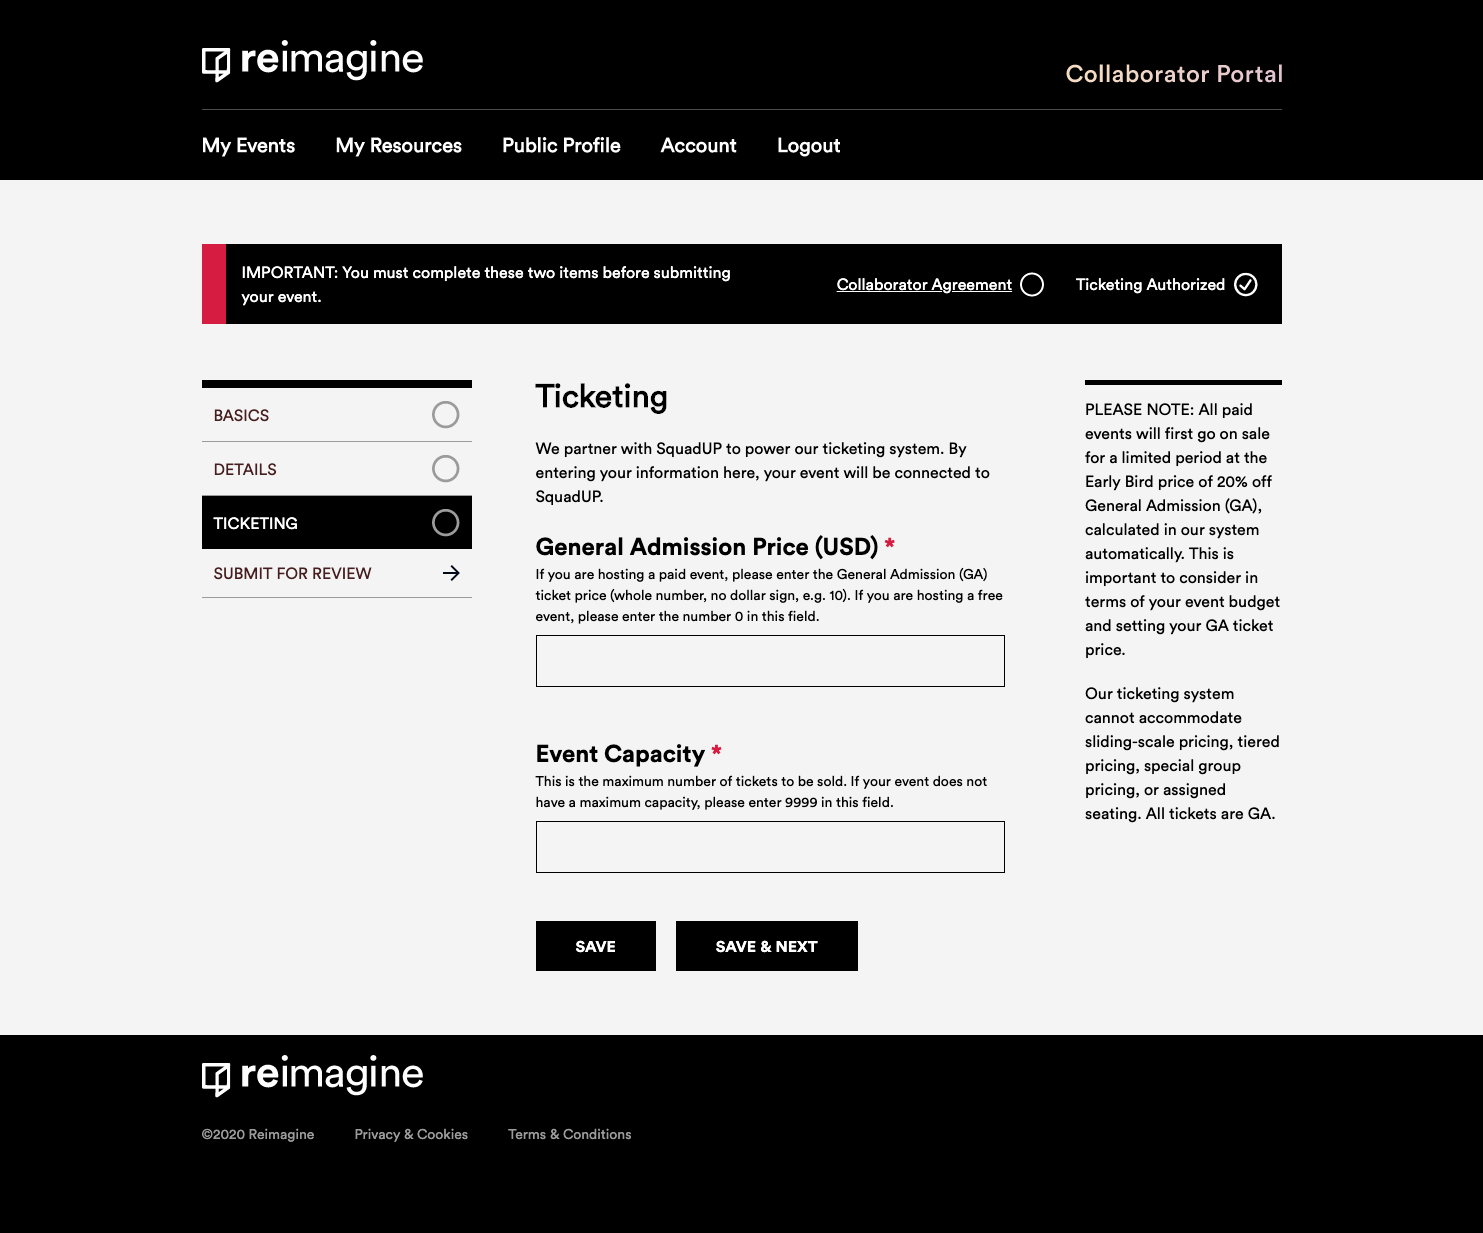 screencapture-portal-letsreimagine-org-events-431-ticketing-2020-04-15-21_15_58.png